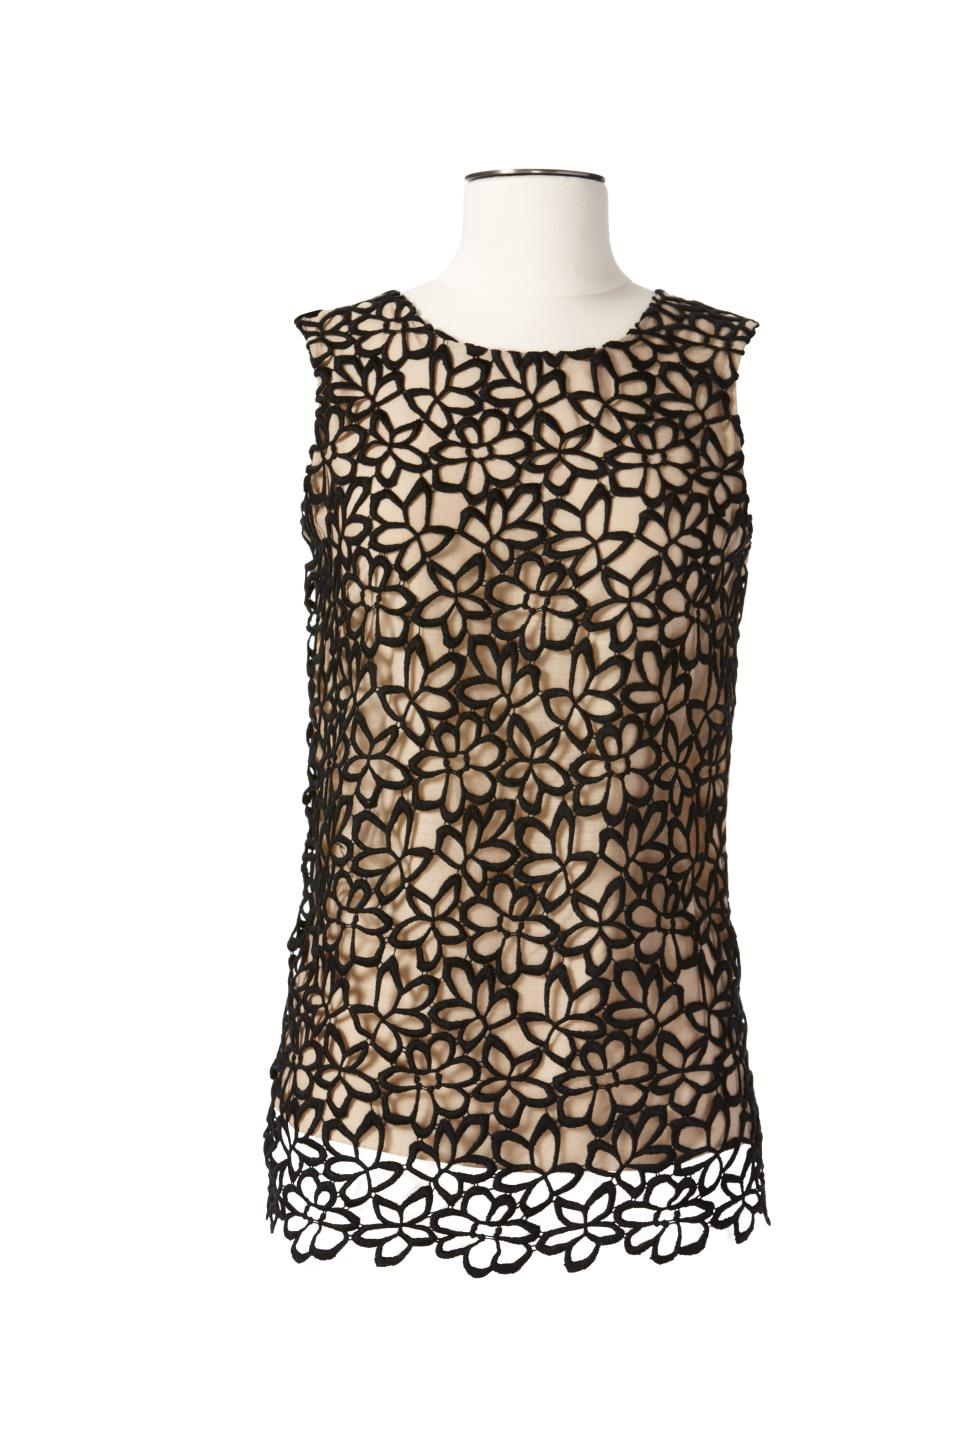 <b>Lela Rose for Target + Neiman Marcus Holiday Collection Top</b><br><br> Price: $69.99<br><br> Size: XS – XL<br><br>